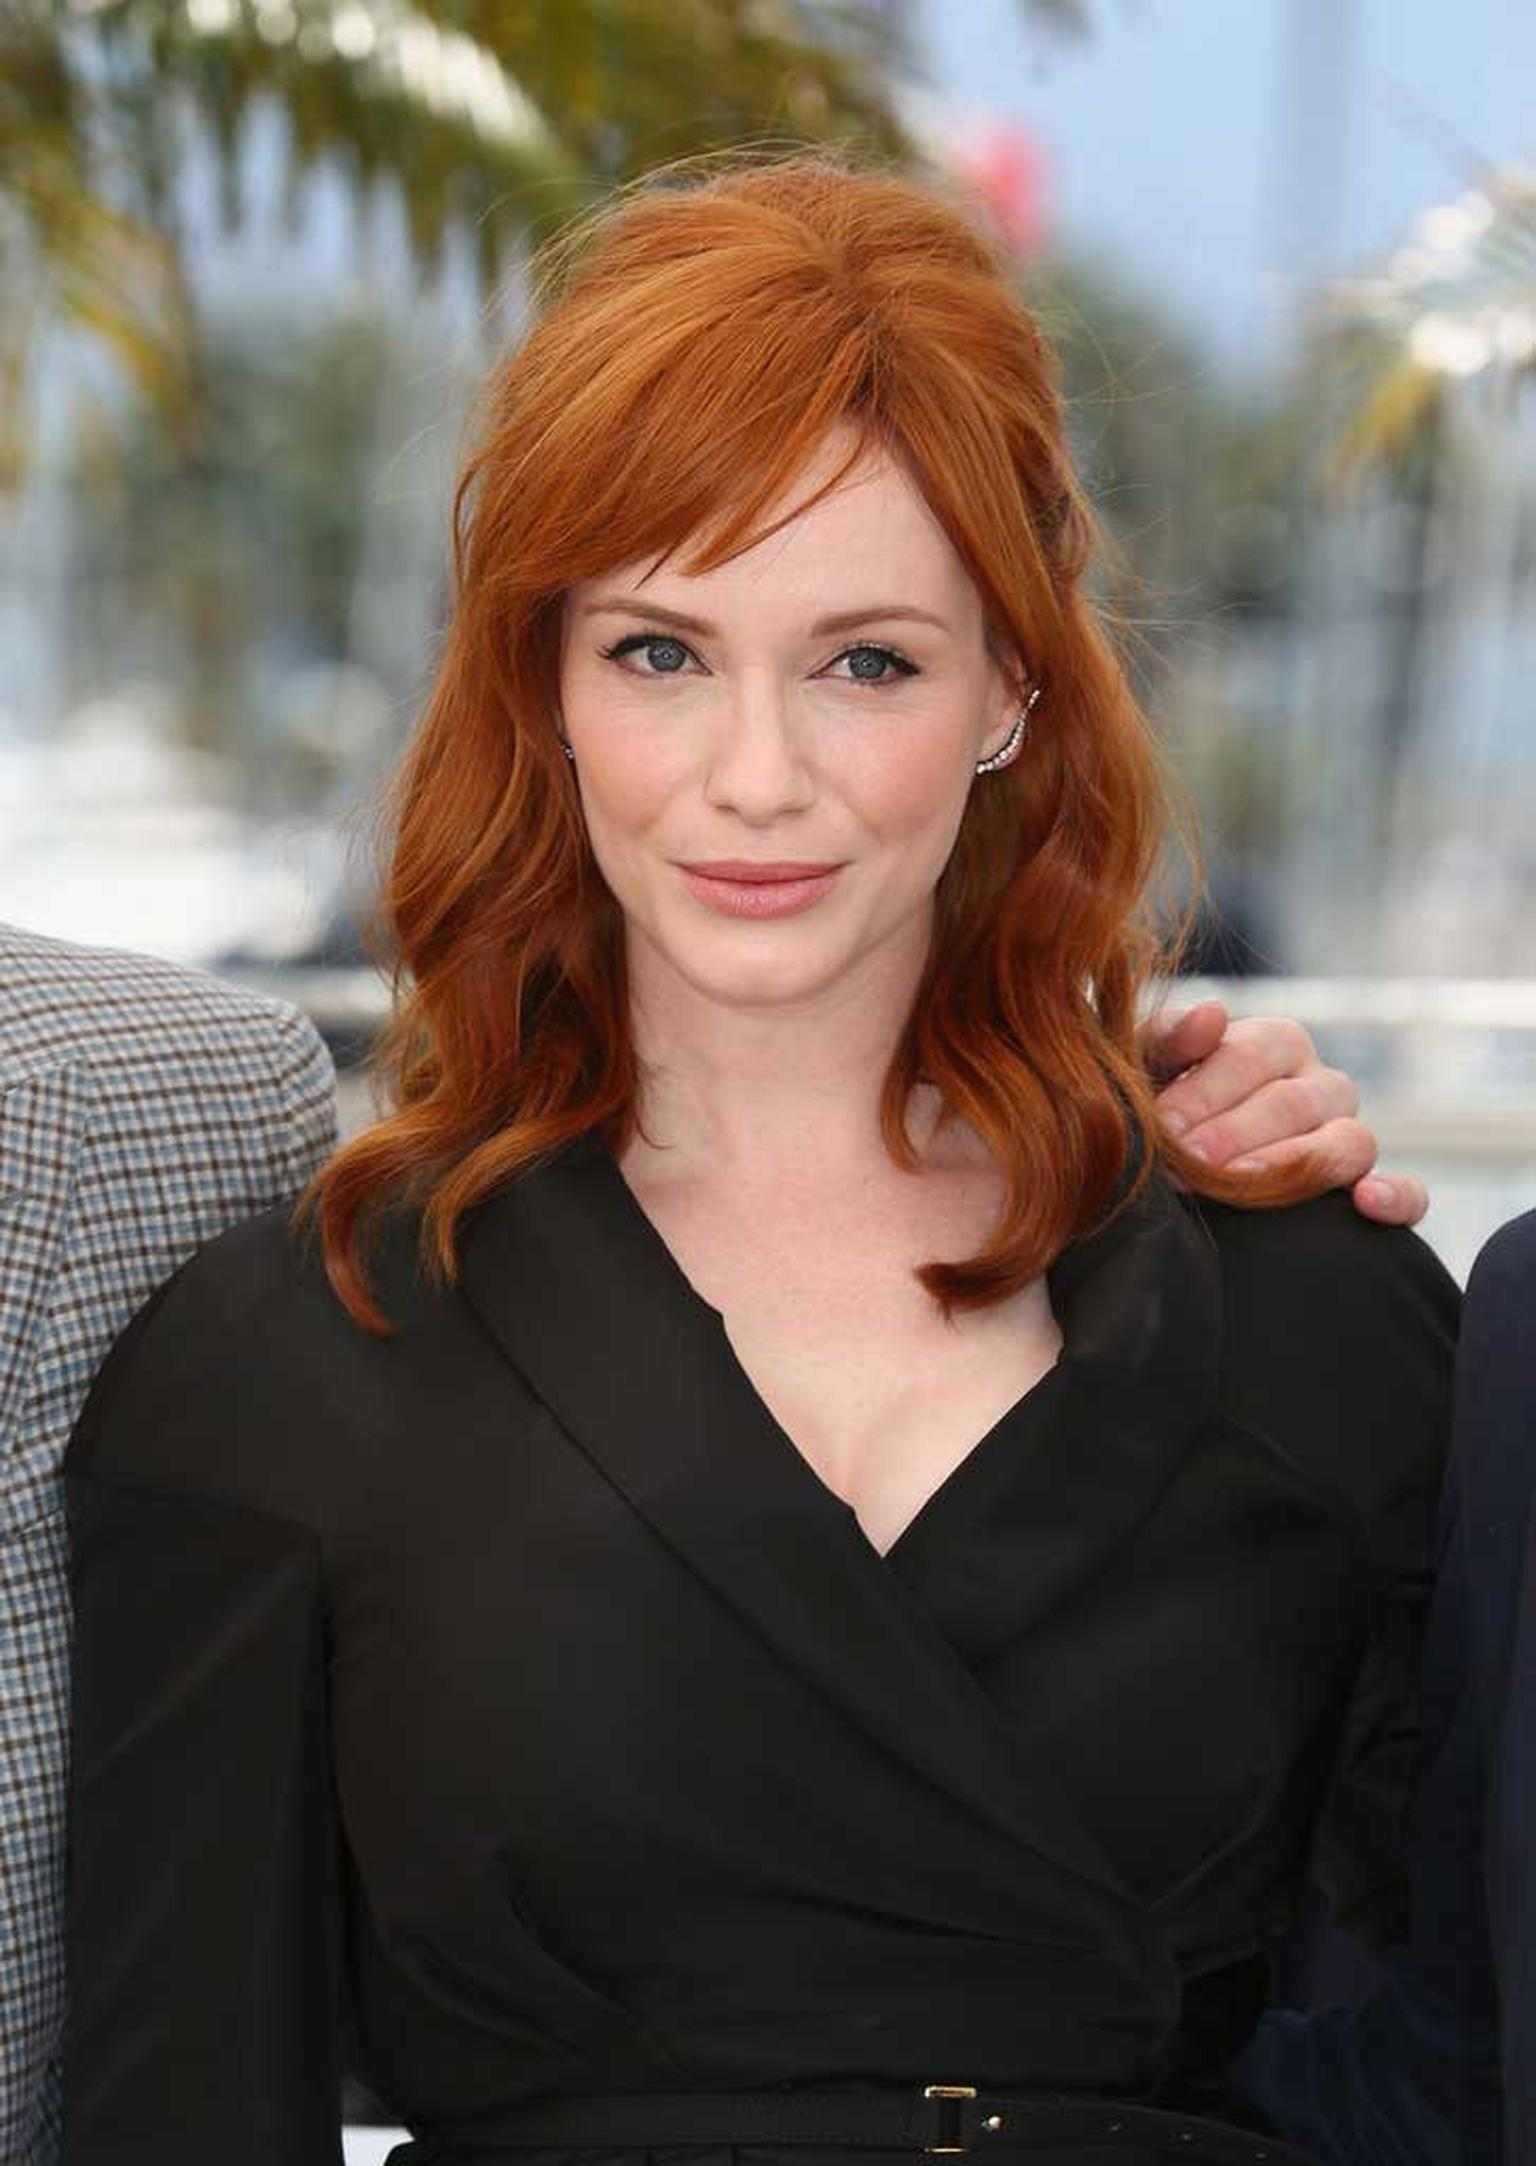 Christina Hendricks attended the Lost River photo call on day seven of the Cannes Film Festival wearing diamond Jack Vartanian ear cuffs